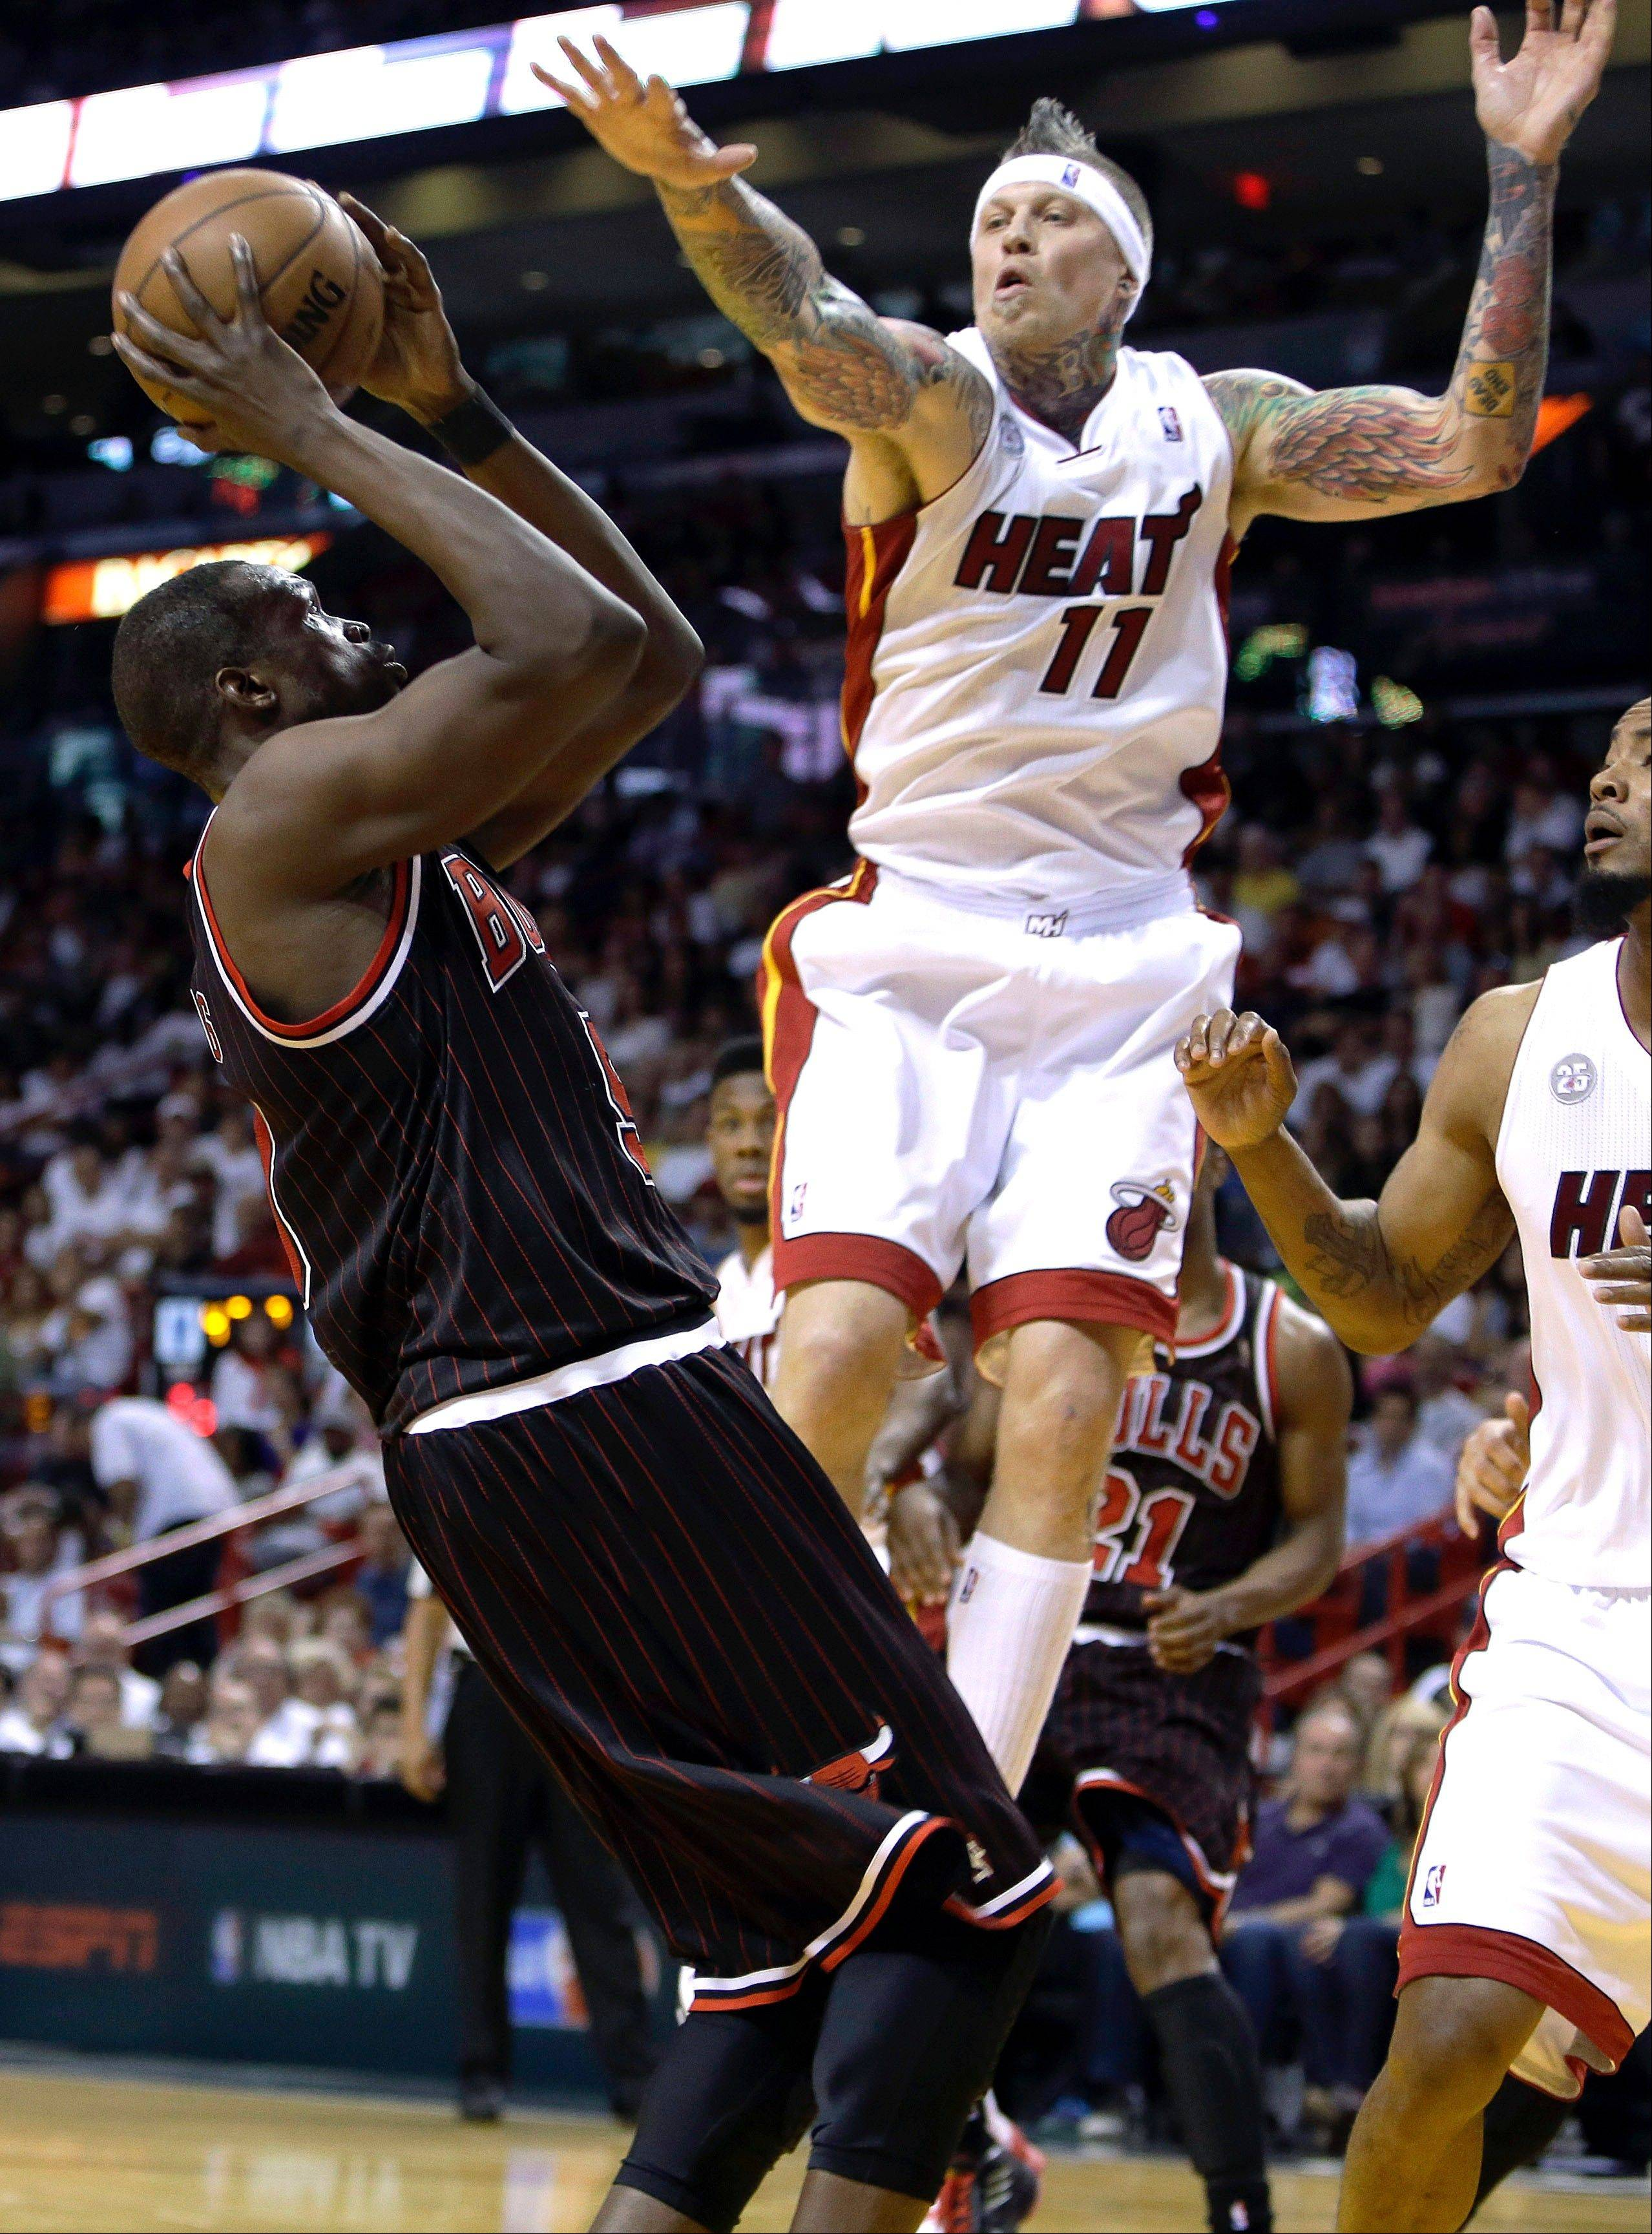 Chicago Bulls� Luol Deng, left, shoots as Miami Heat�s Chris Andersen (11) defends during the second half of an NBA basketball game Sunday April 14, 2013, in Miami. The Heat defeated the Bulls 105-93.